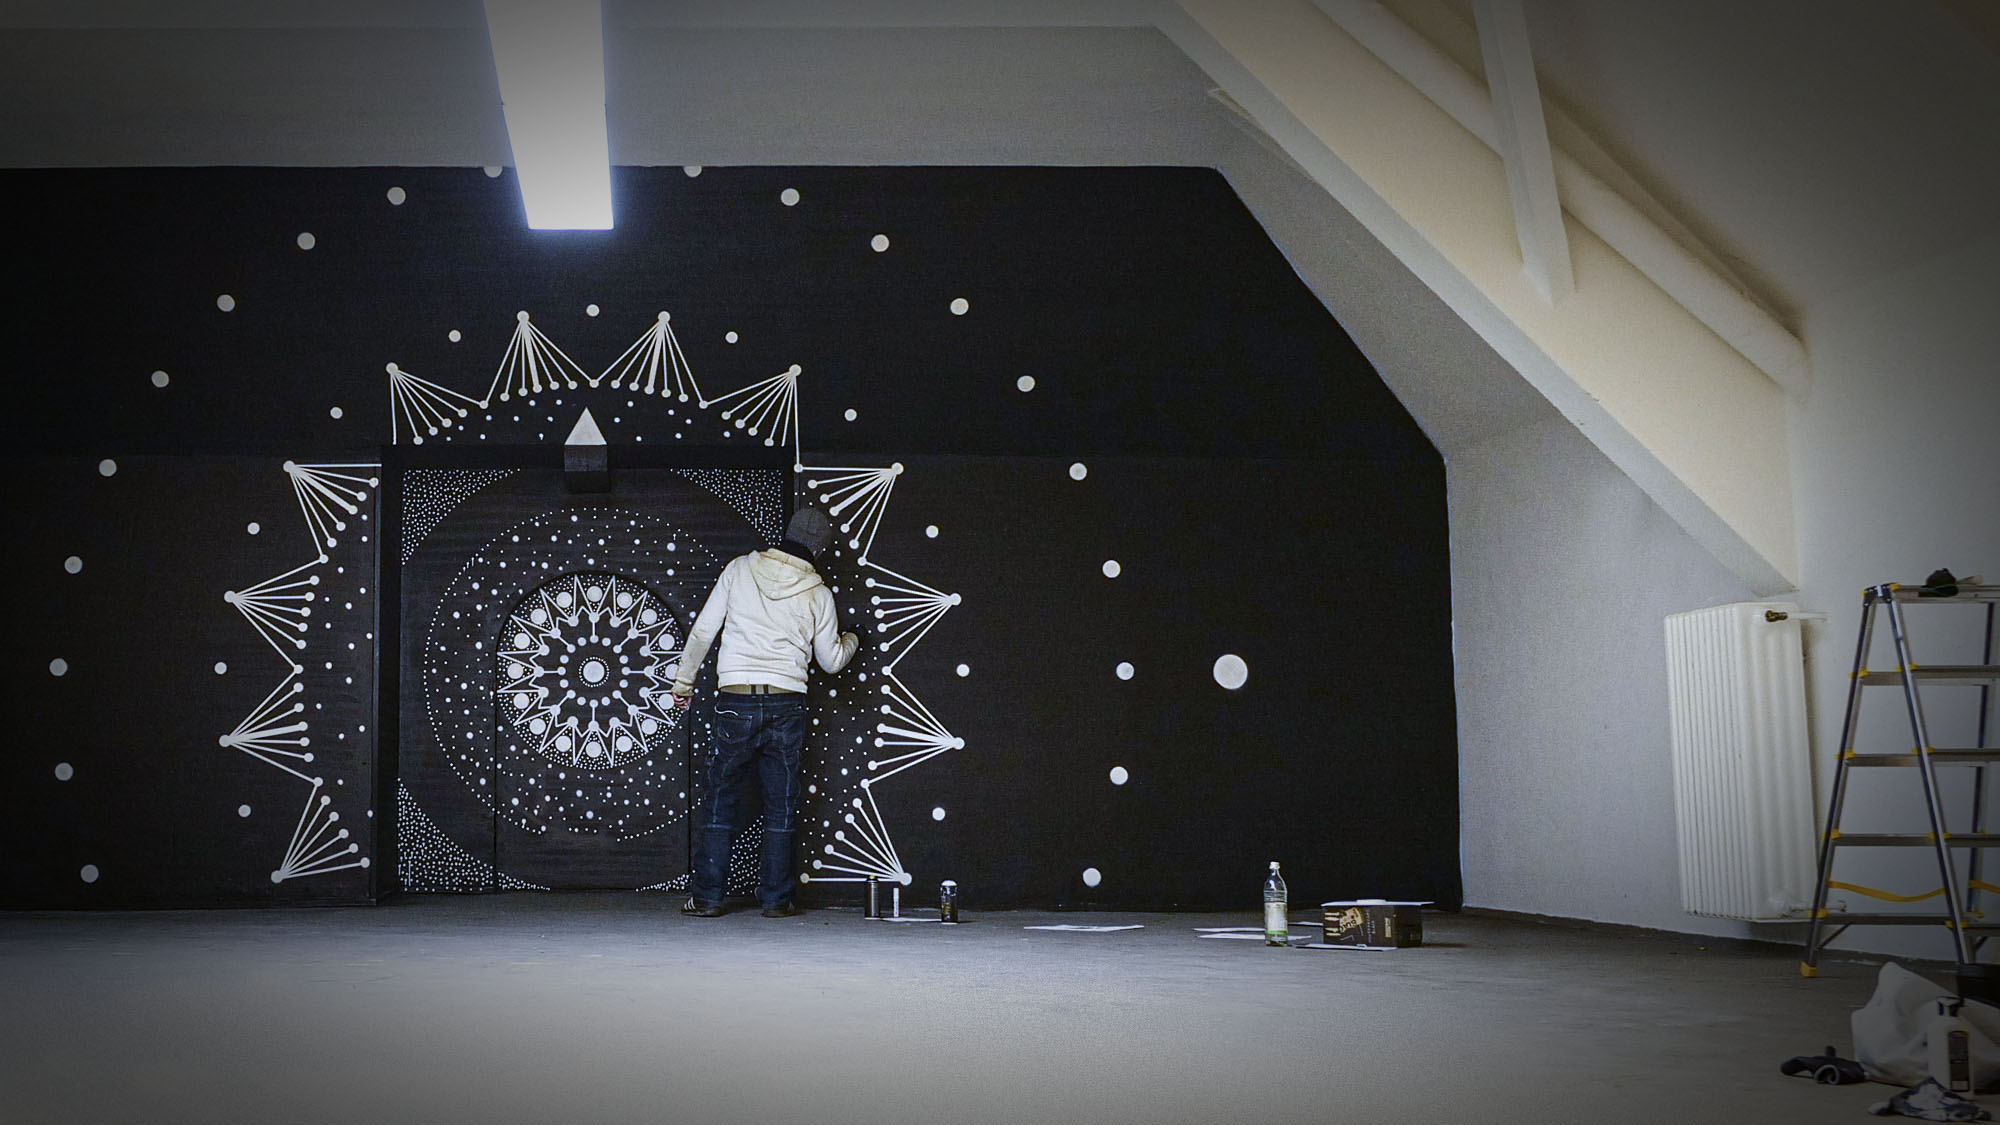 Image of a video art installation and street art mural painting showing a making off scene